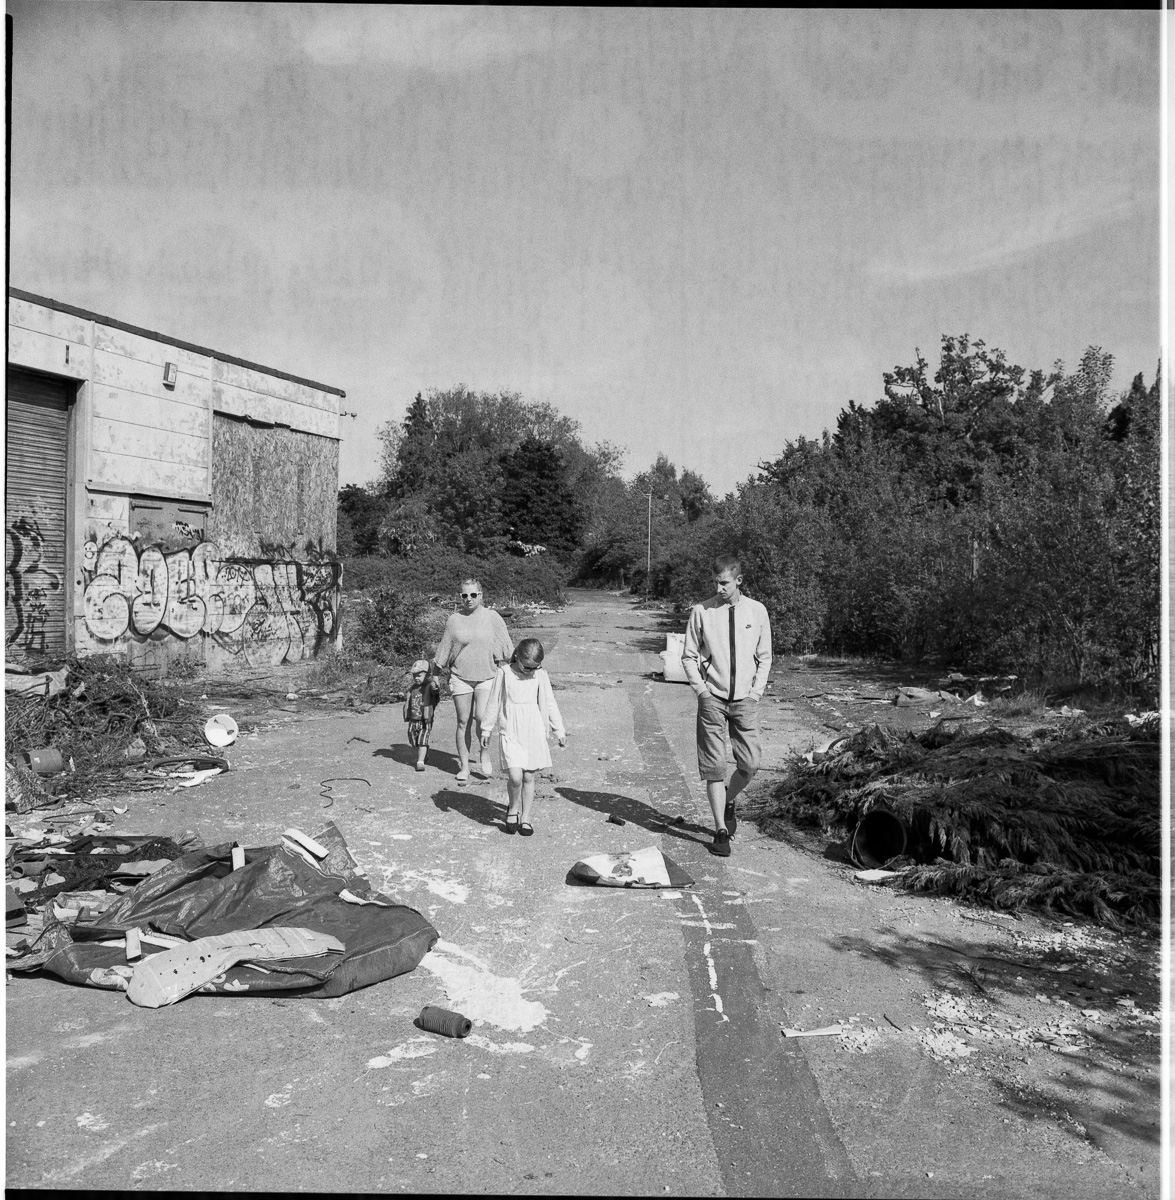 A family, mother, father, son and daughter walk through the derelict site.